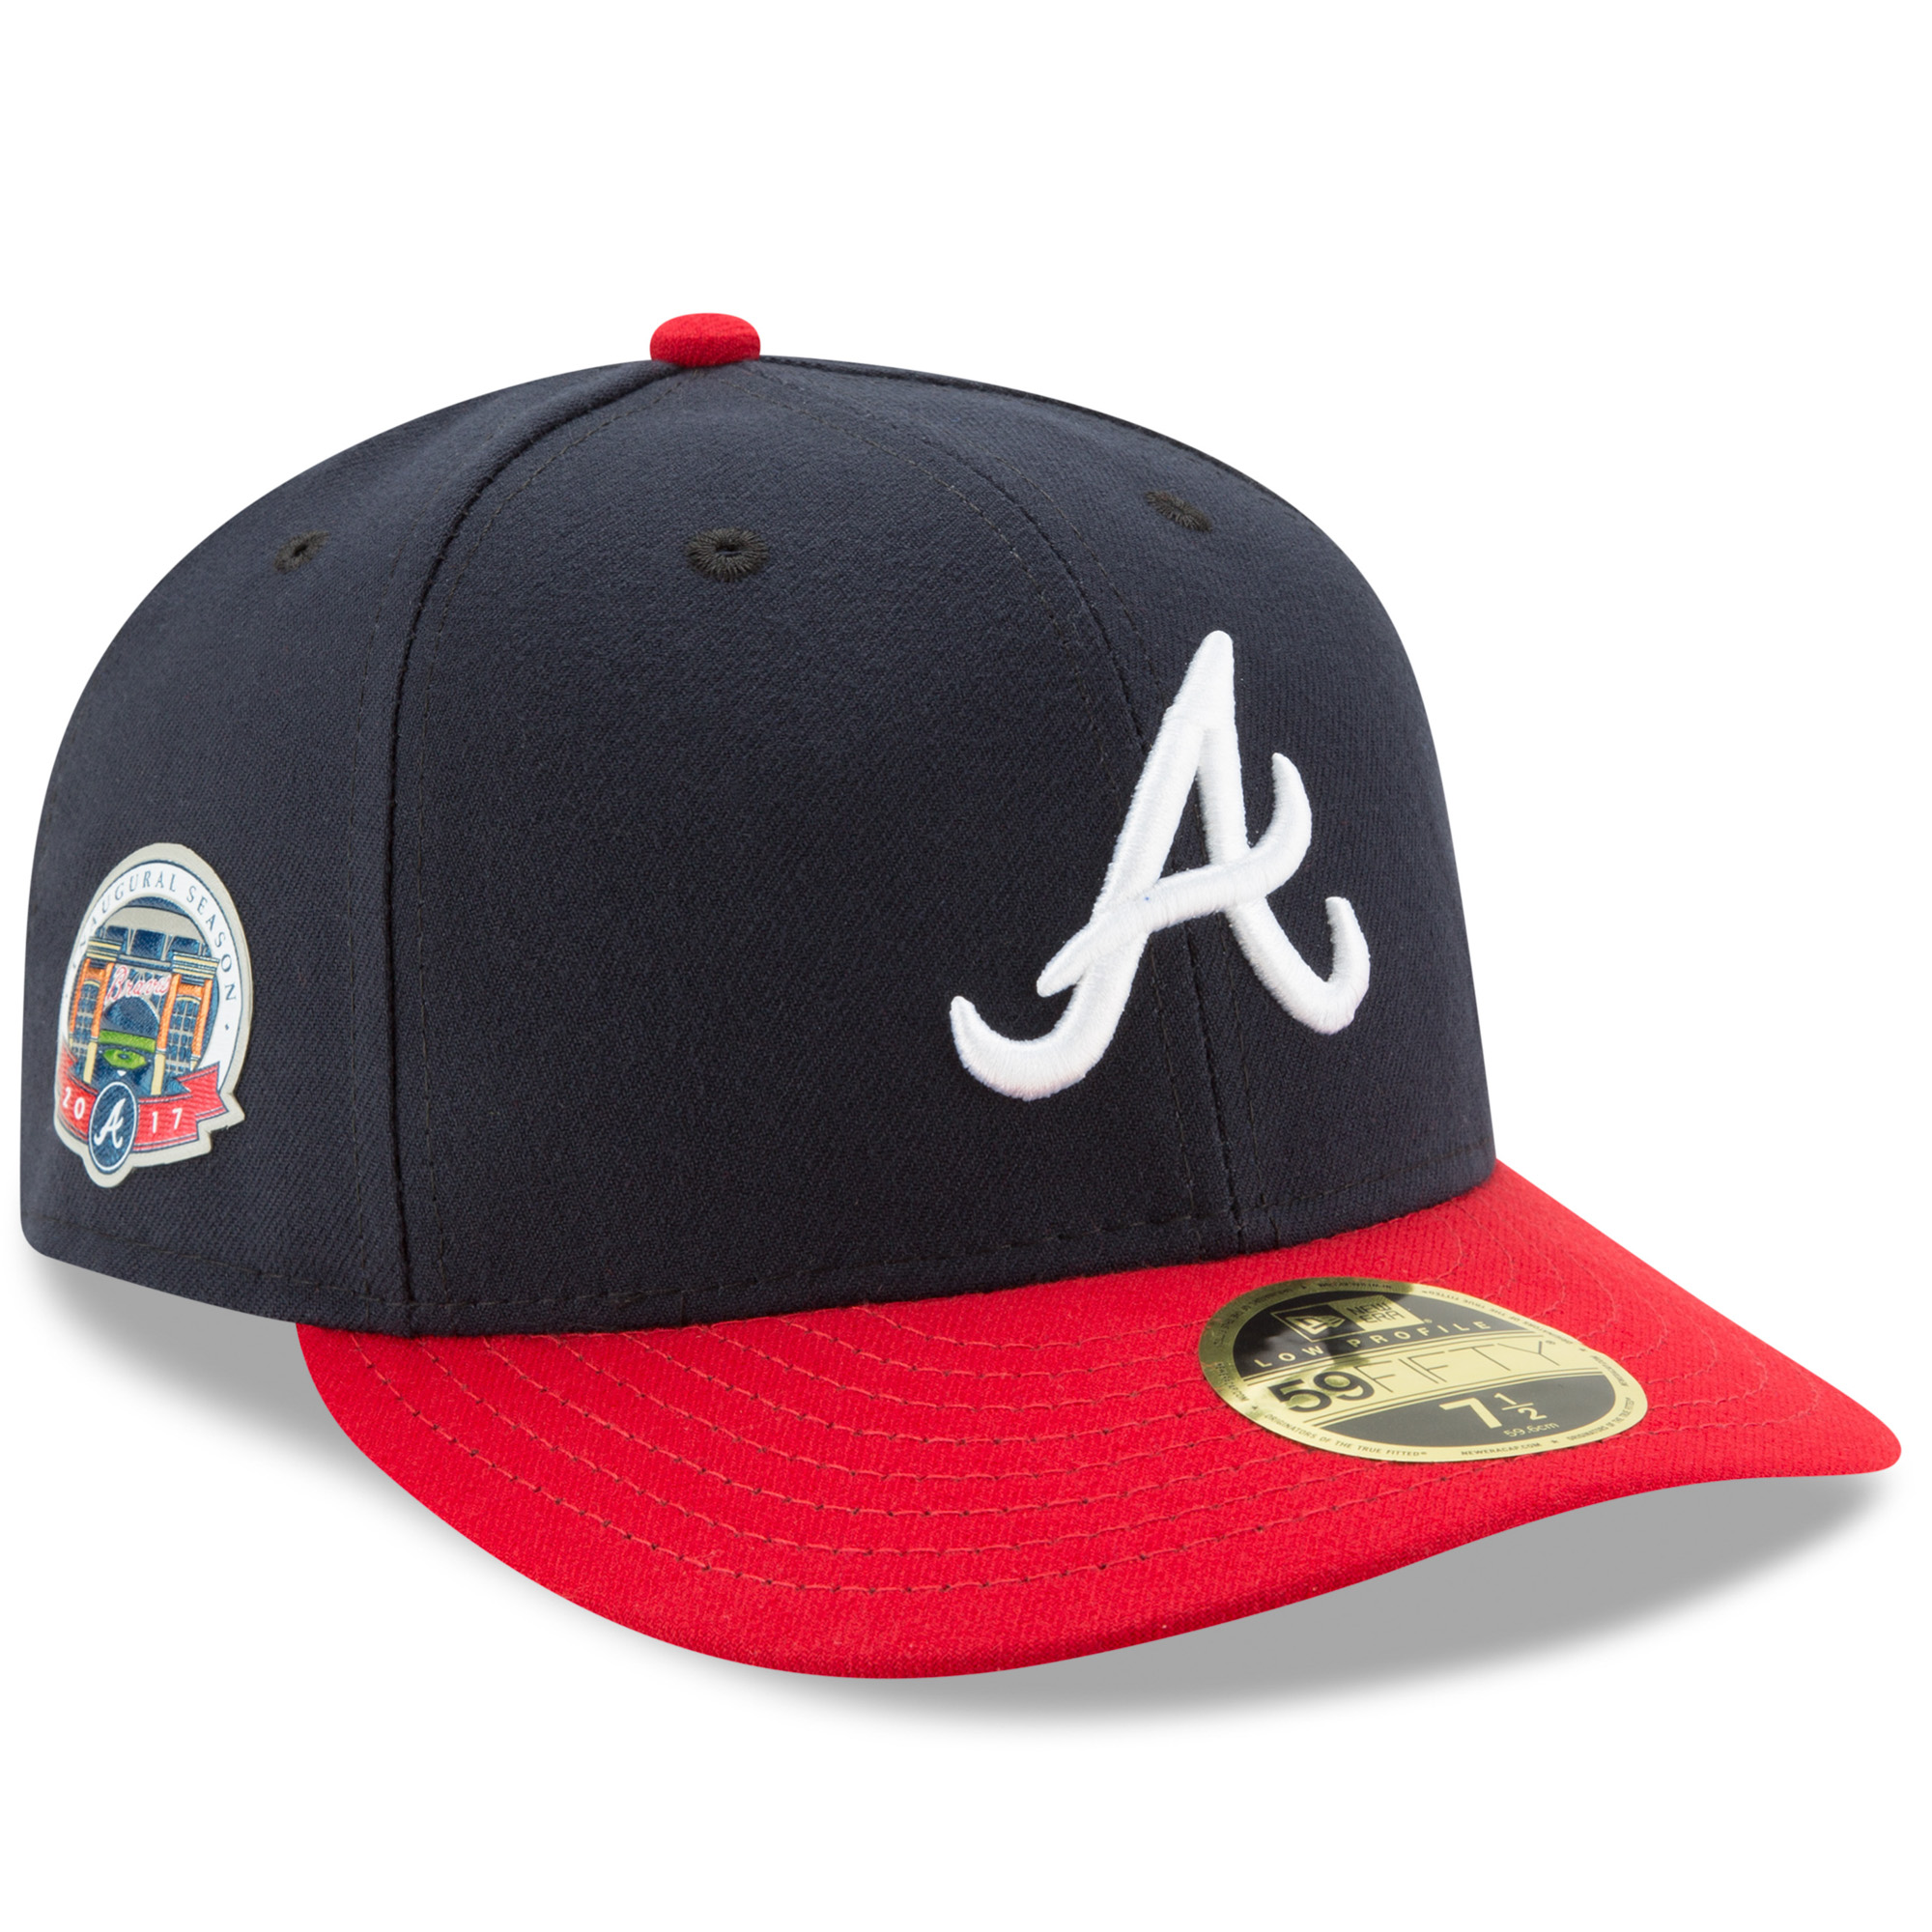 Atlanta Braves New Era SunTrust Park Inaugural Season Patch Authentic Collection On-Field Low Profile 59FIFTY Fitted Hat - Navy/Red